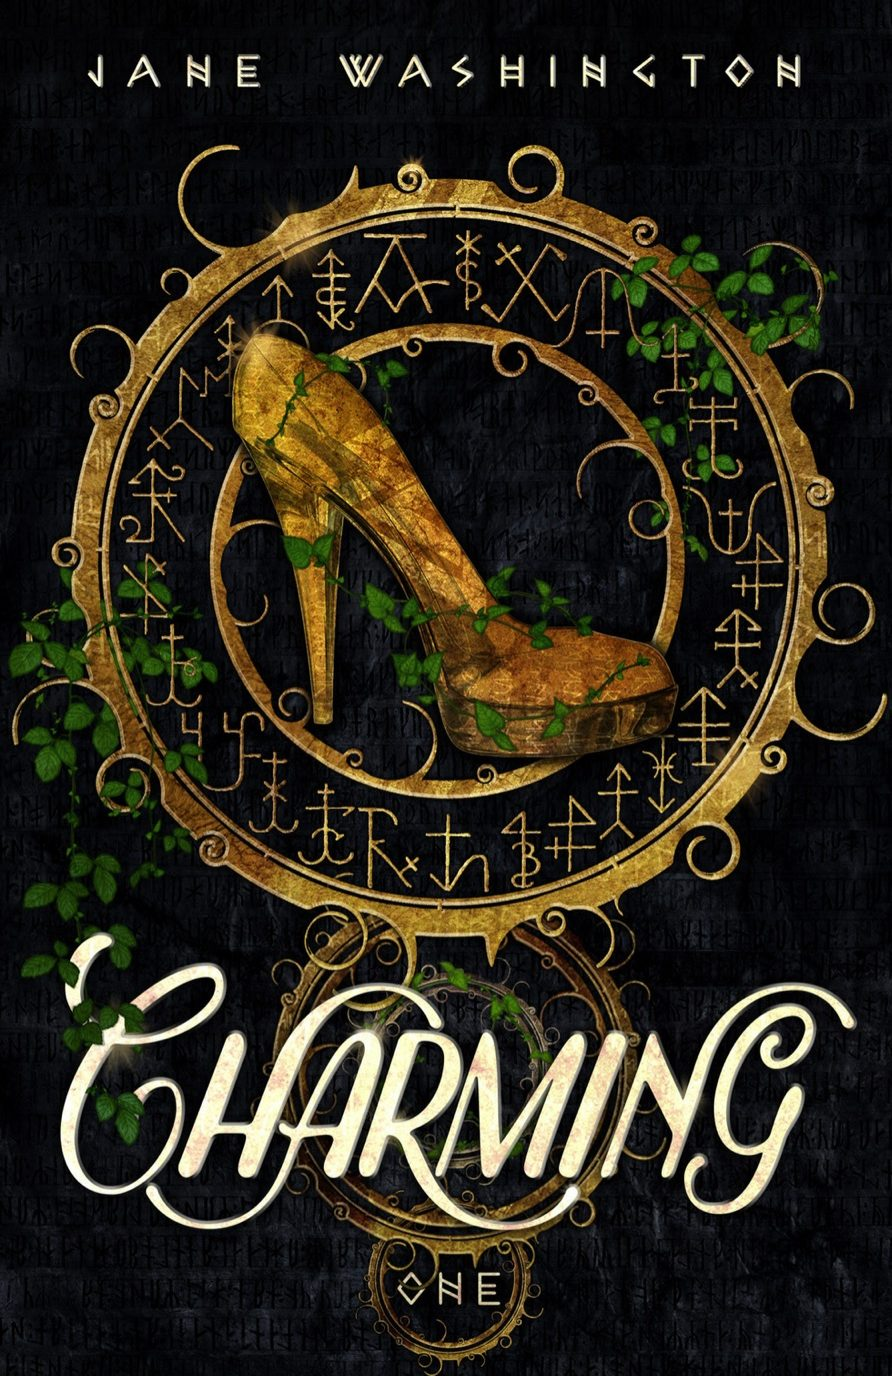 Charming by Jane Washington – A Book Review